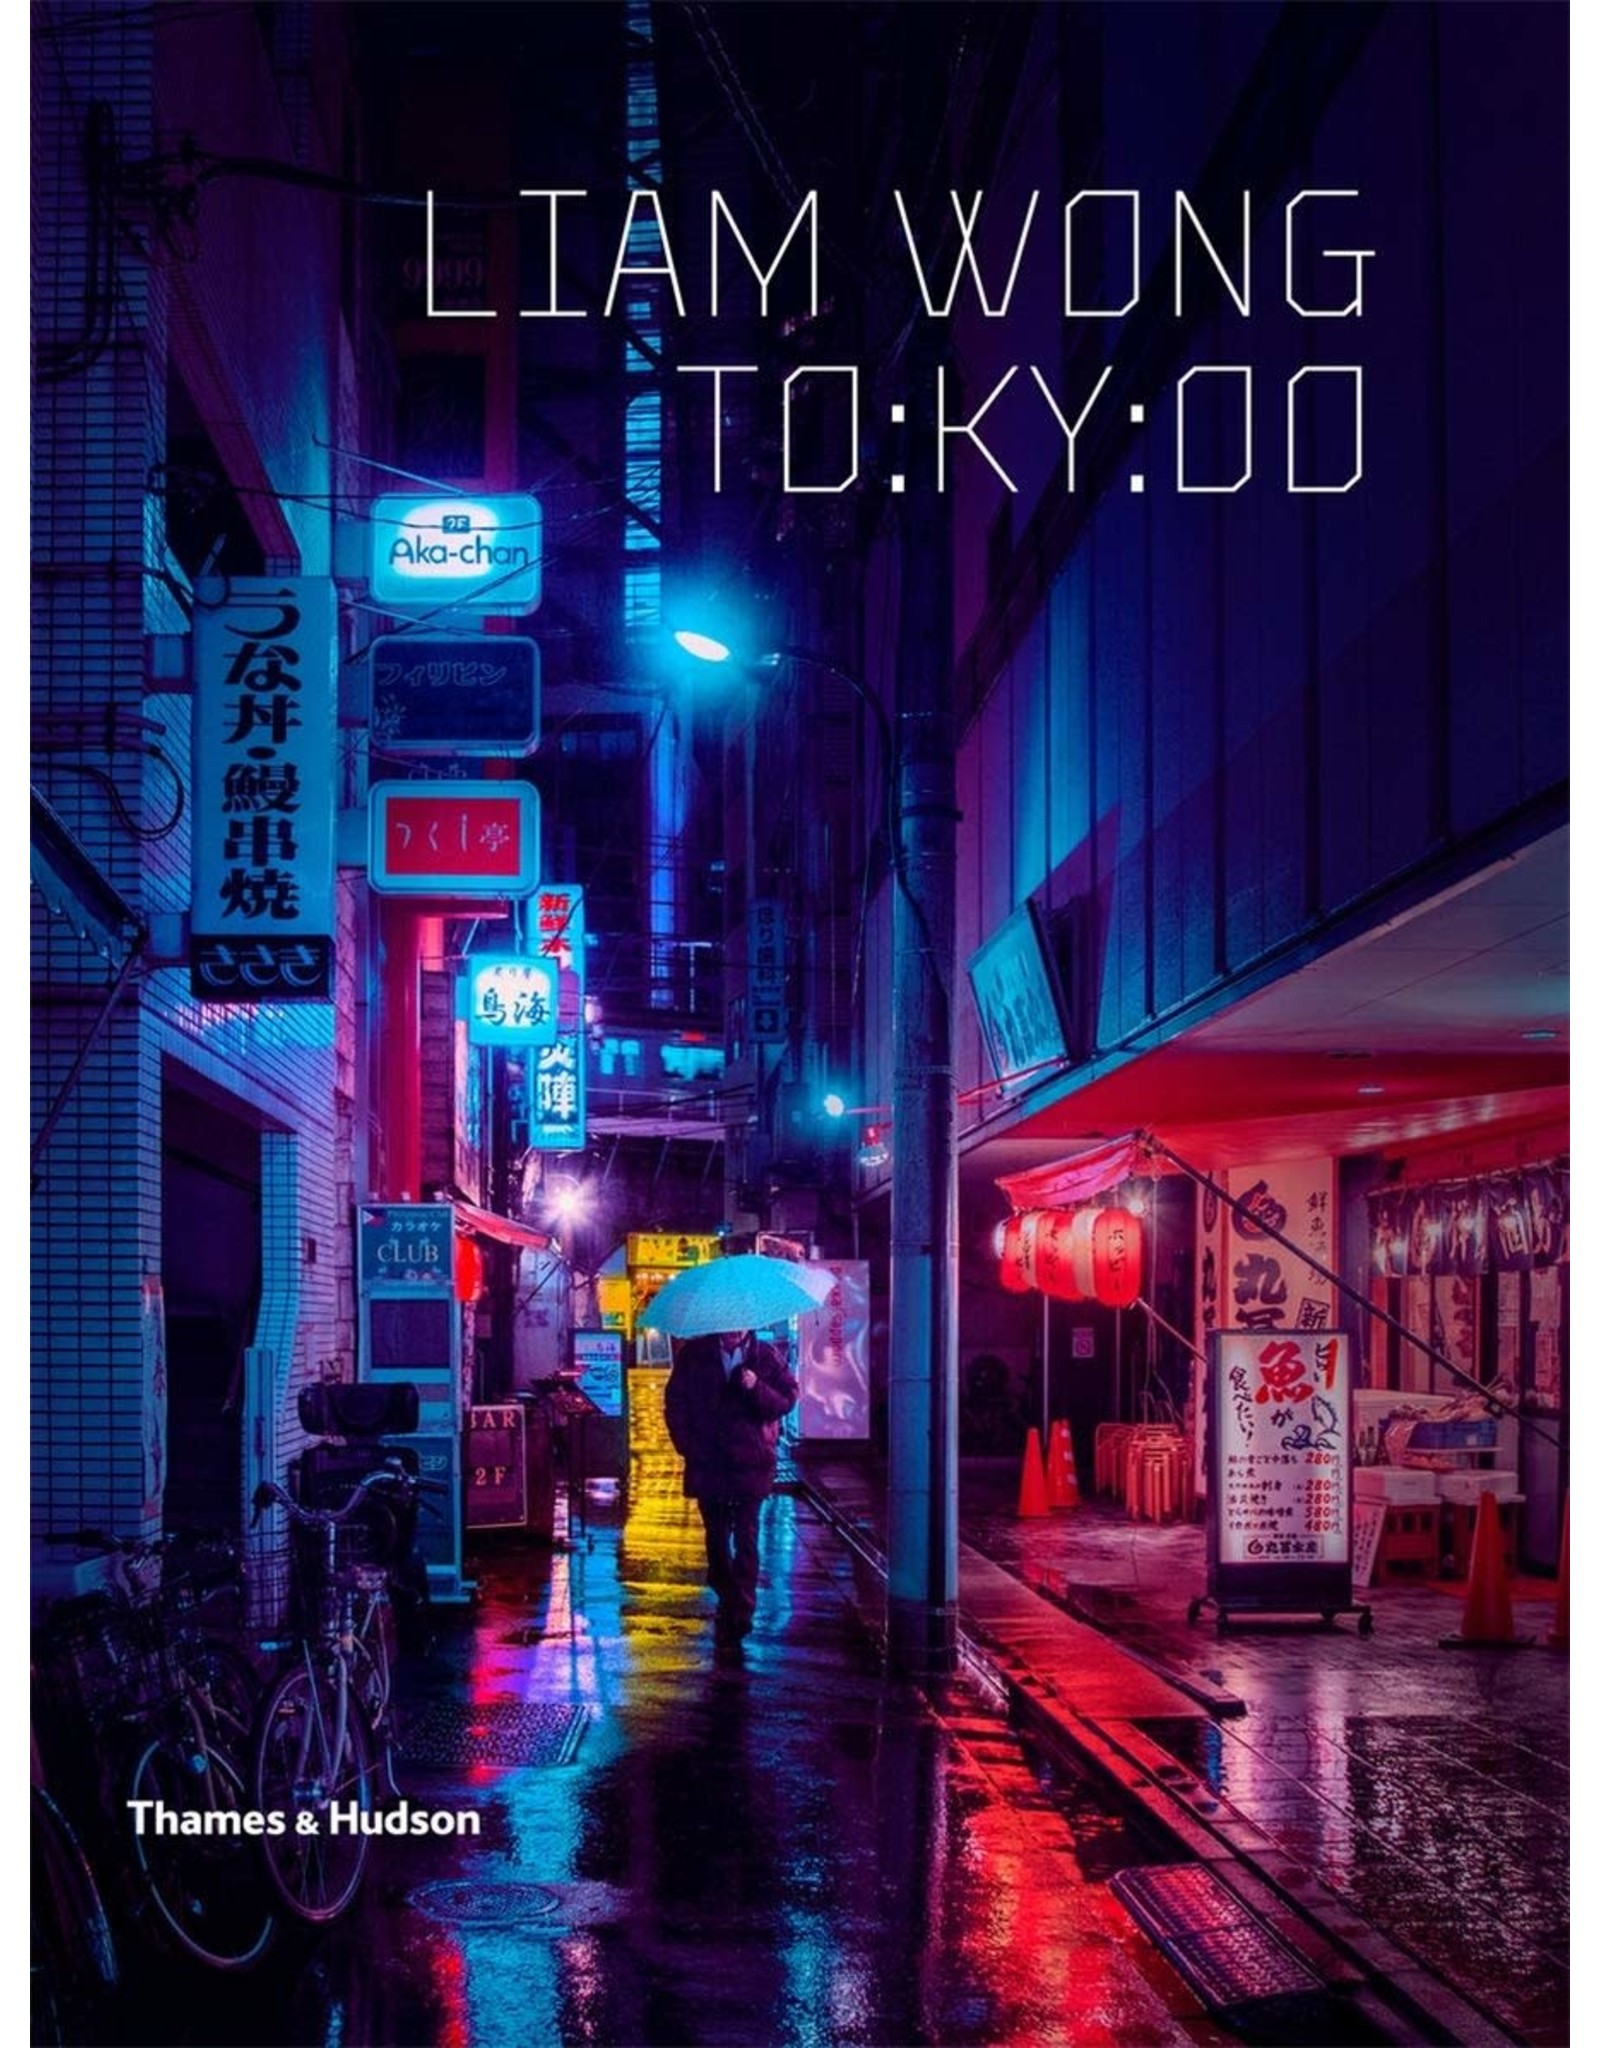 TO:KY:OO - Liam Wong - Paperback (Engelstalig)